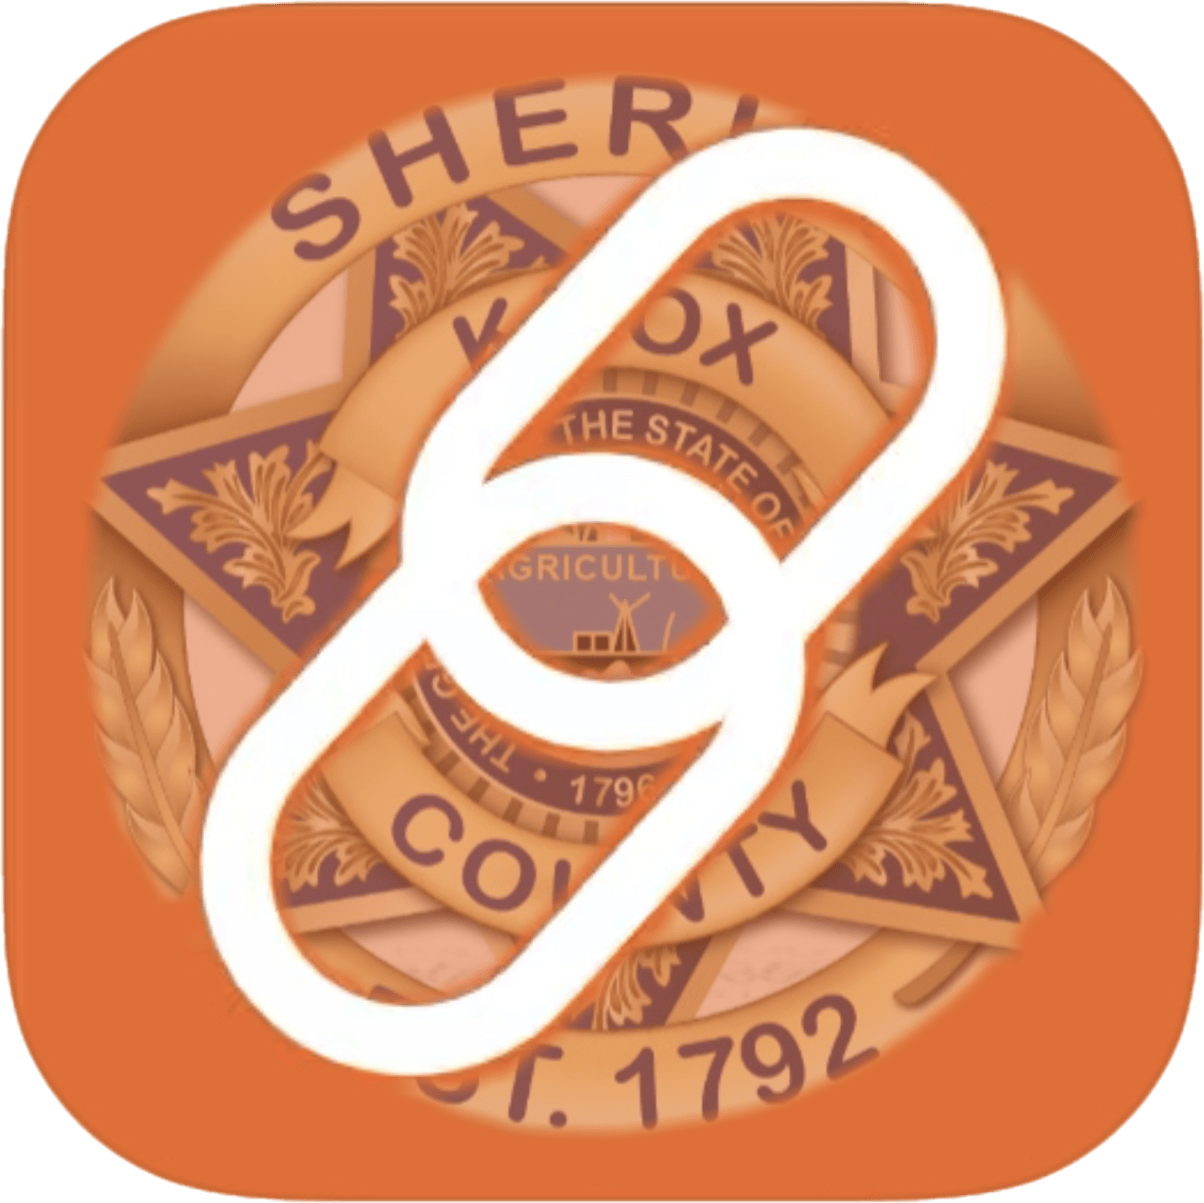 KCSO badge with hyperlink icon over orange background